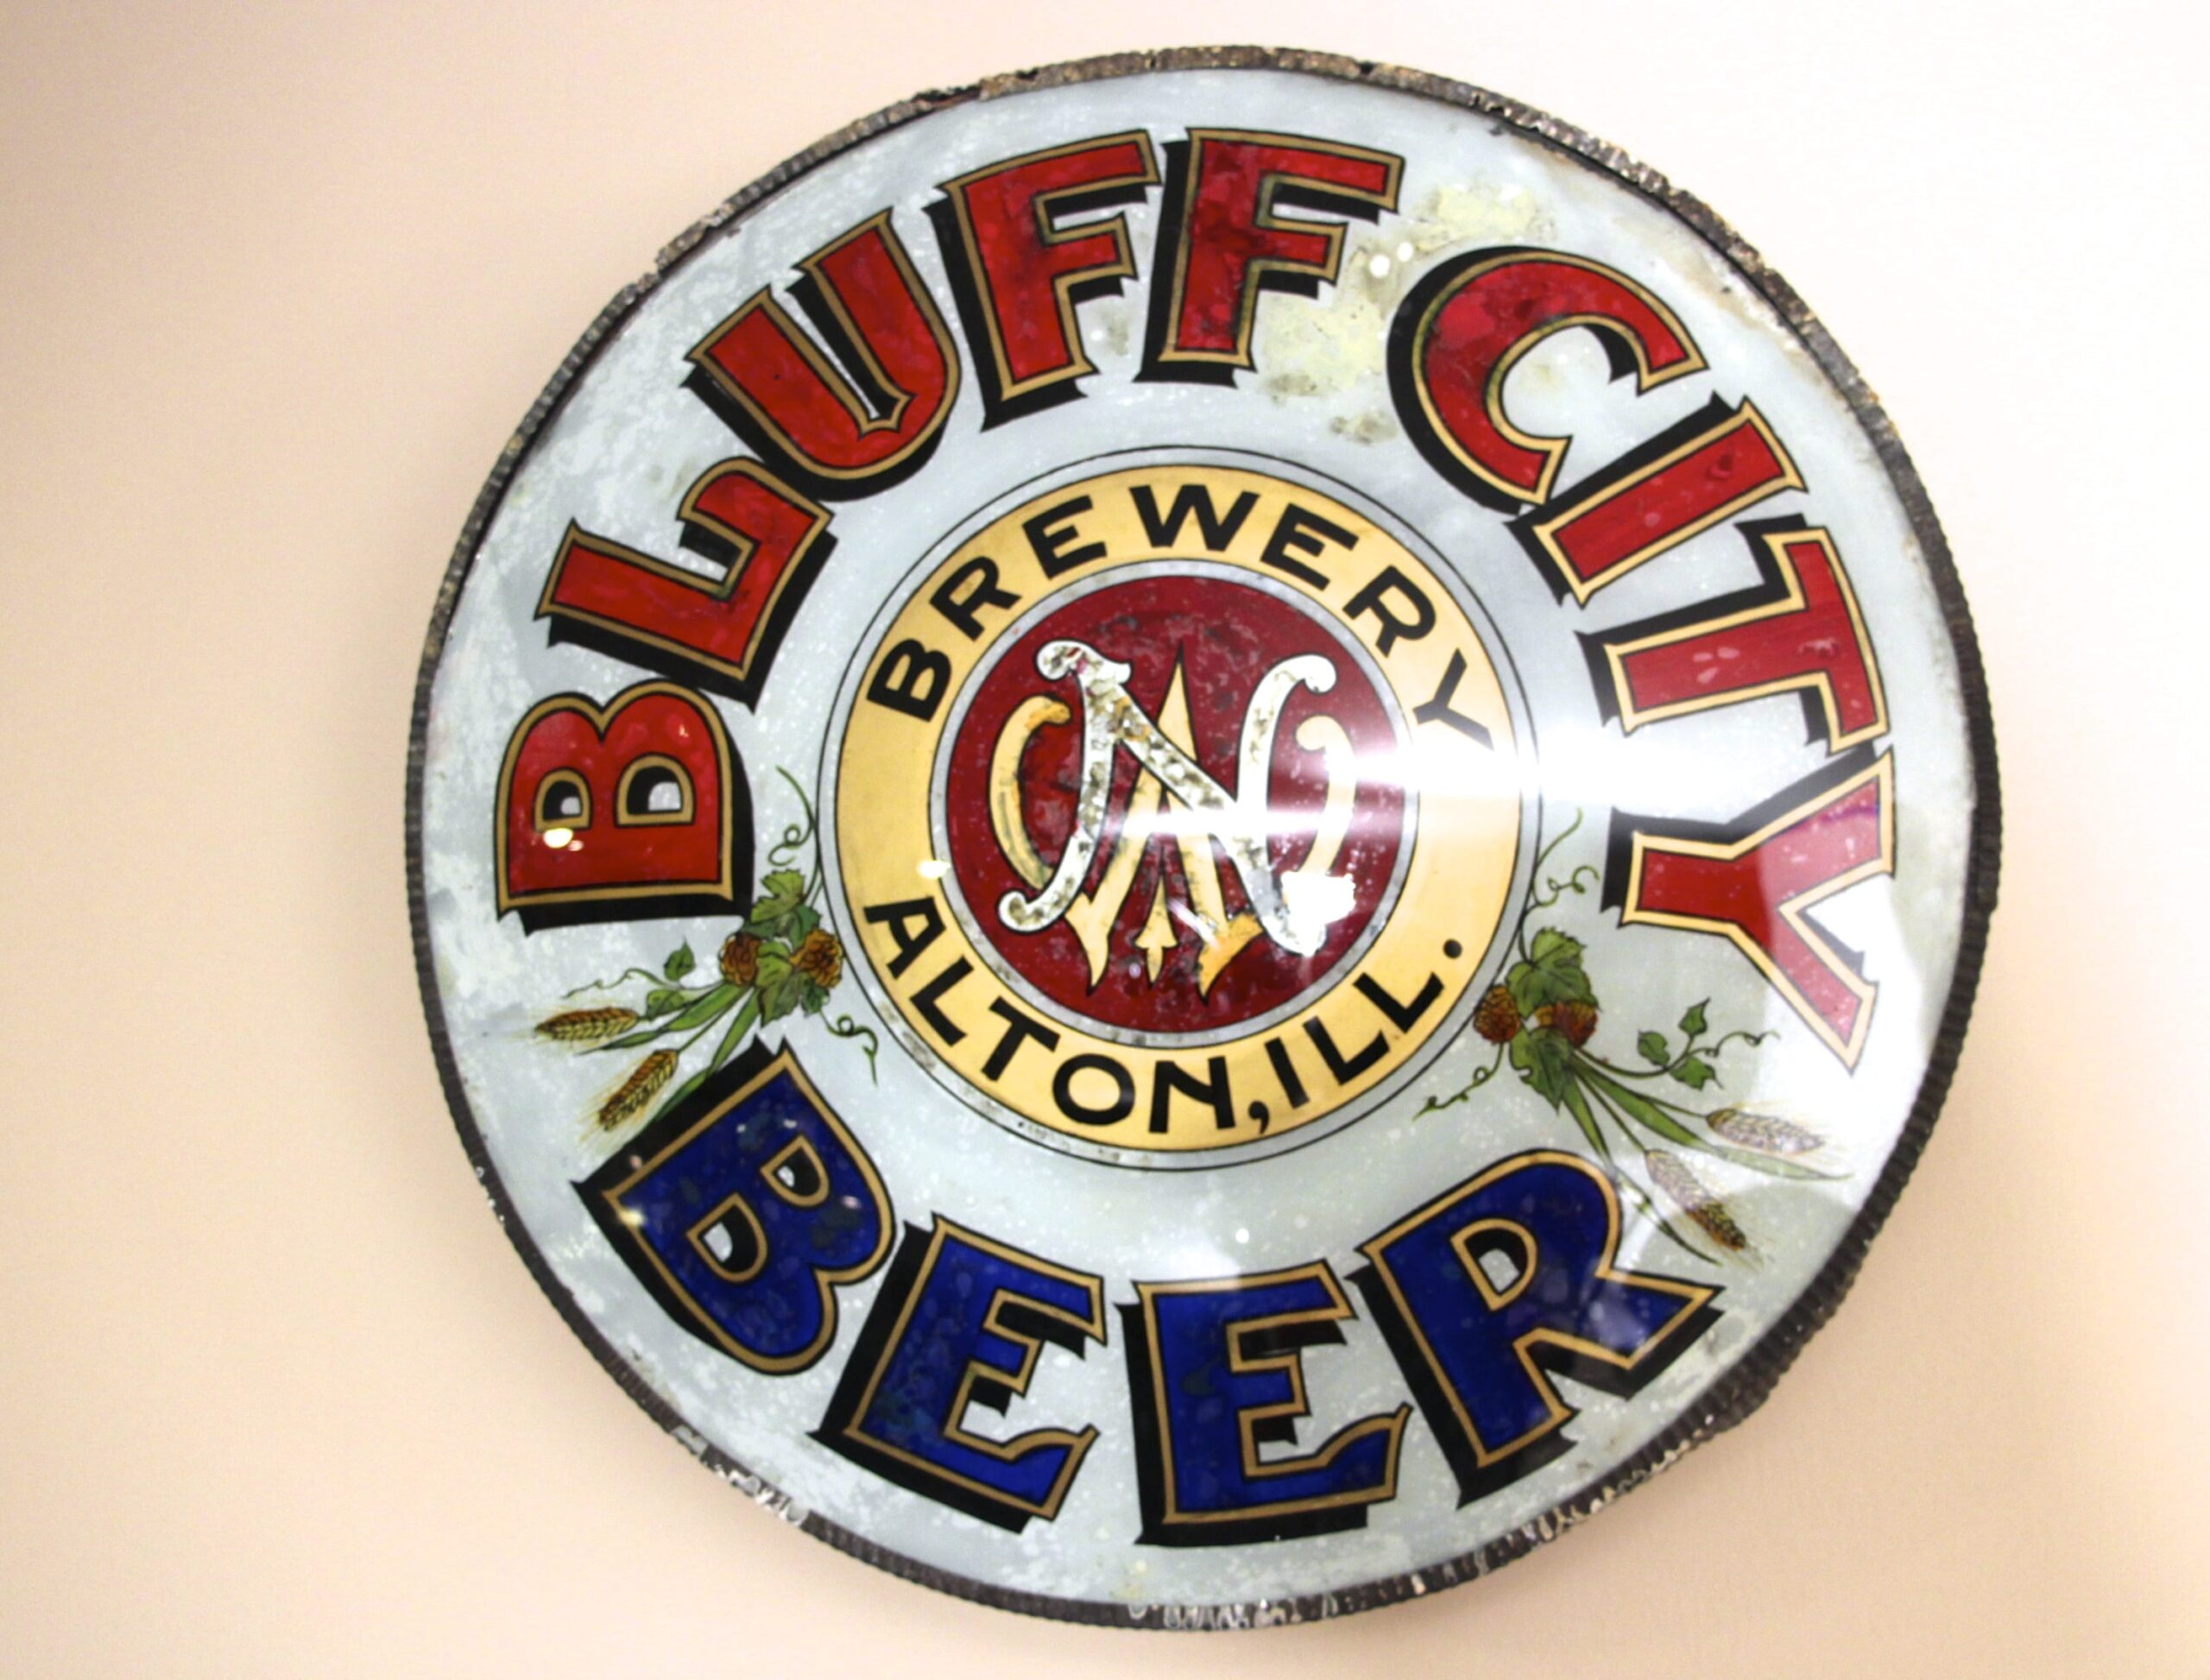 Bluff City Brewery Corner Sign From Alton, IL 1890